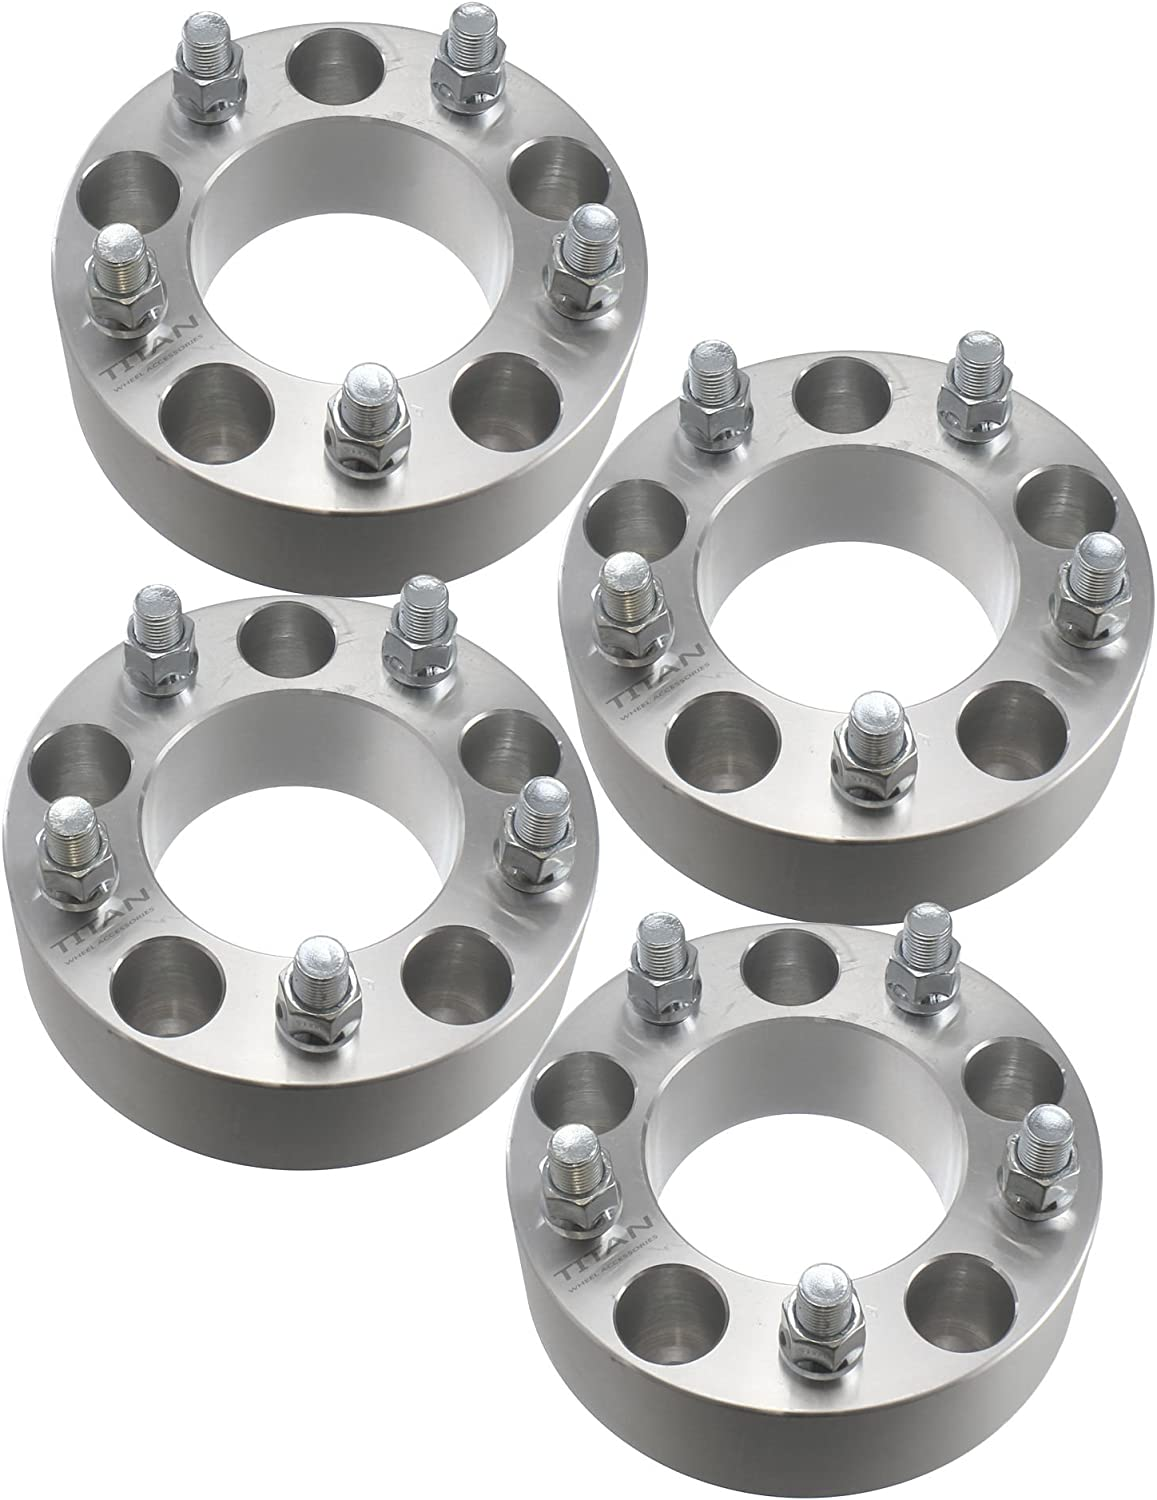 5x4.5 to 5x4.5 5x114.3mm with 1//2x20 Studs fit for 1991-2010 Ford Explorer 1994-2009 Mazda B4000 50mm cciyu 4PCS 50mm Wheel Spacers 2